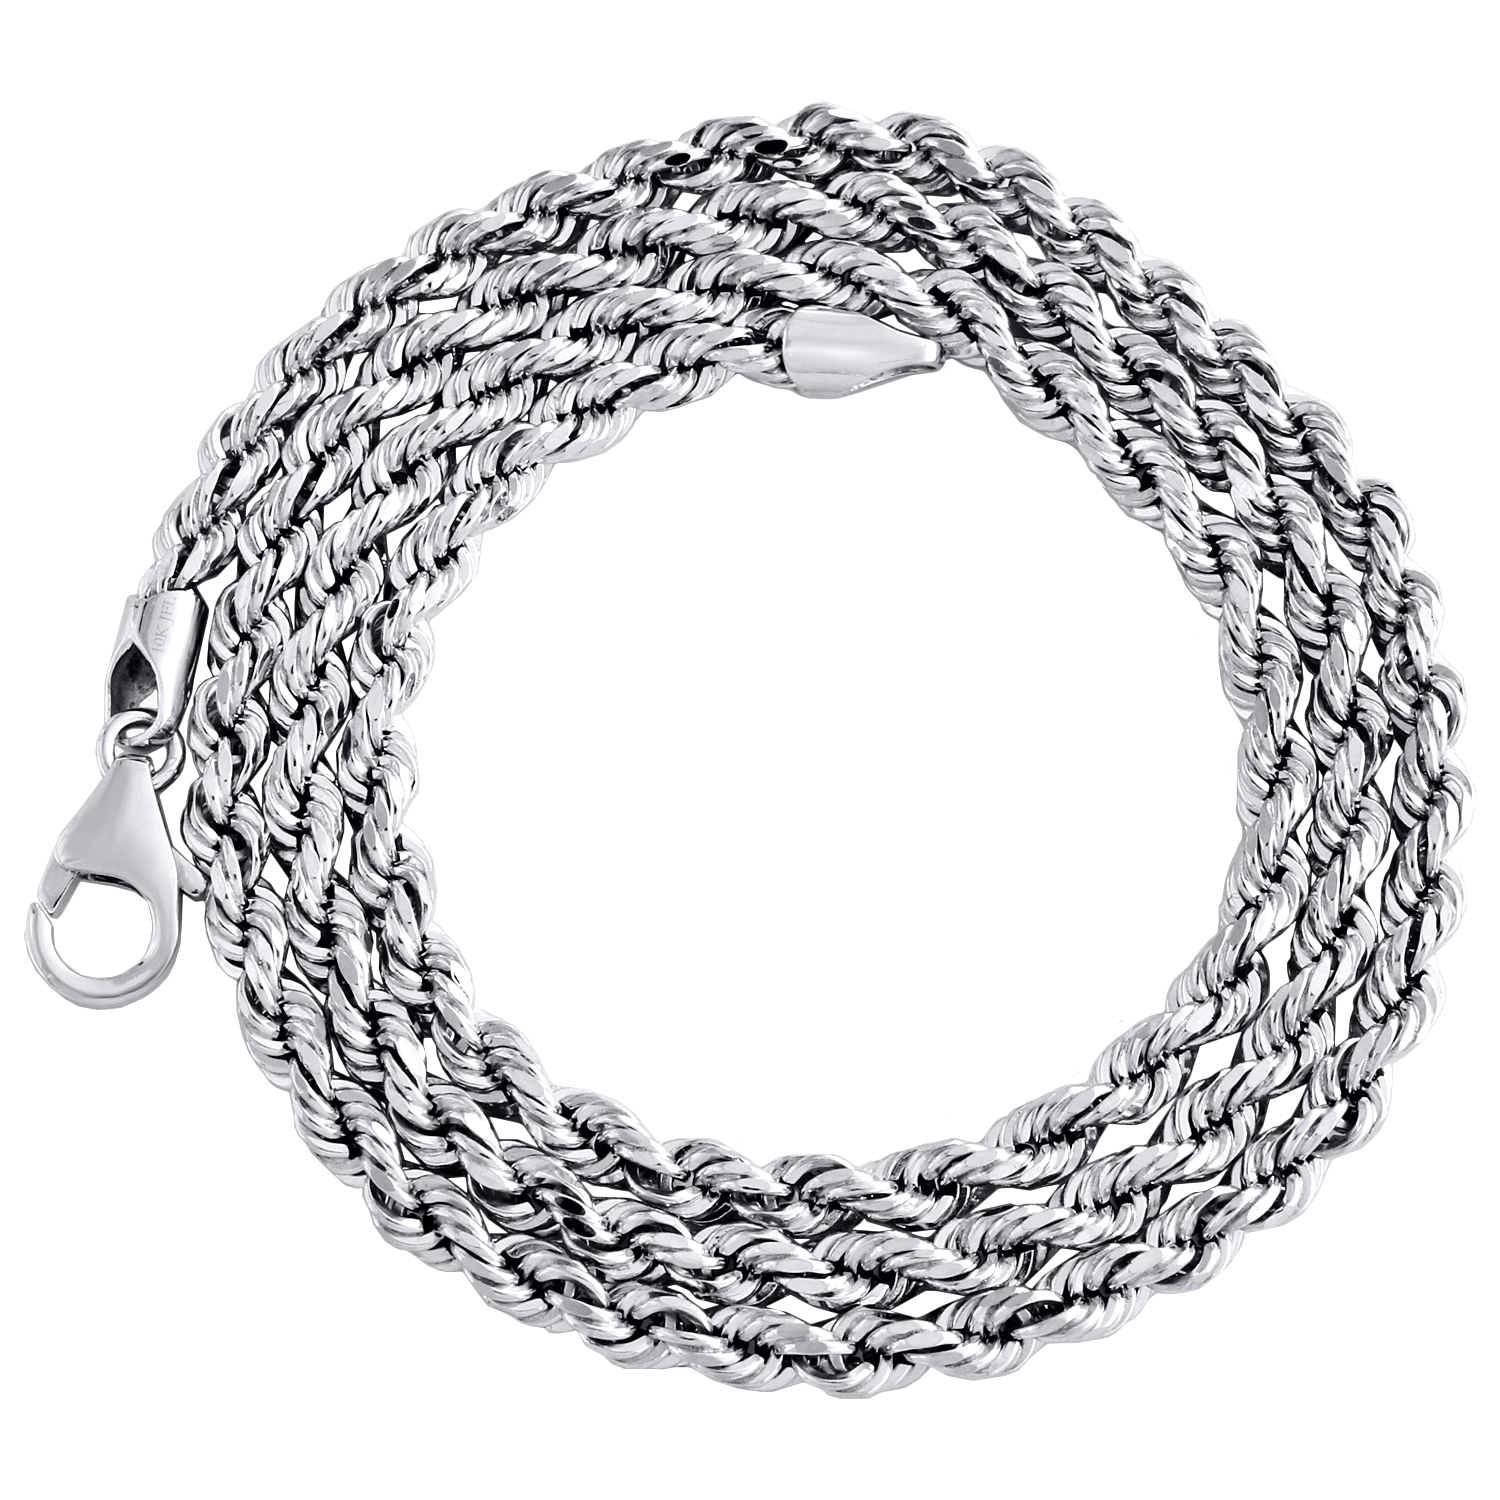 Sterling Silver Polished Solid 3.25mm Box Chain Necklace With Lobster Clasp Length 30 Inch